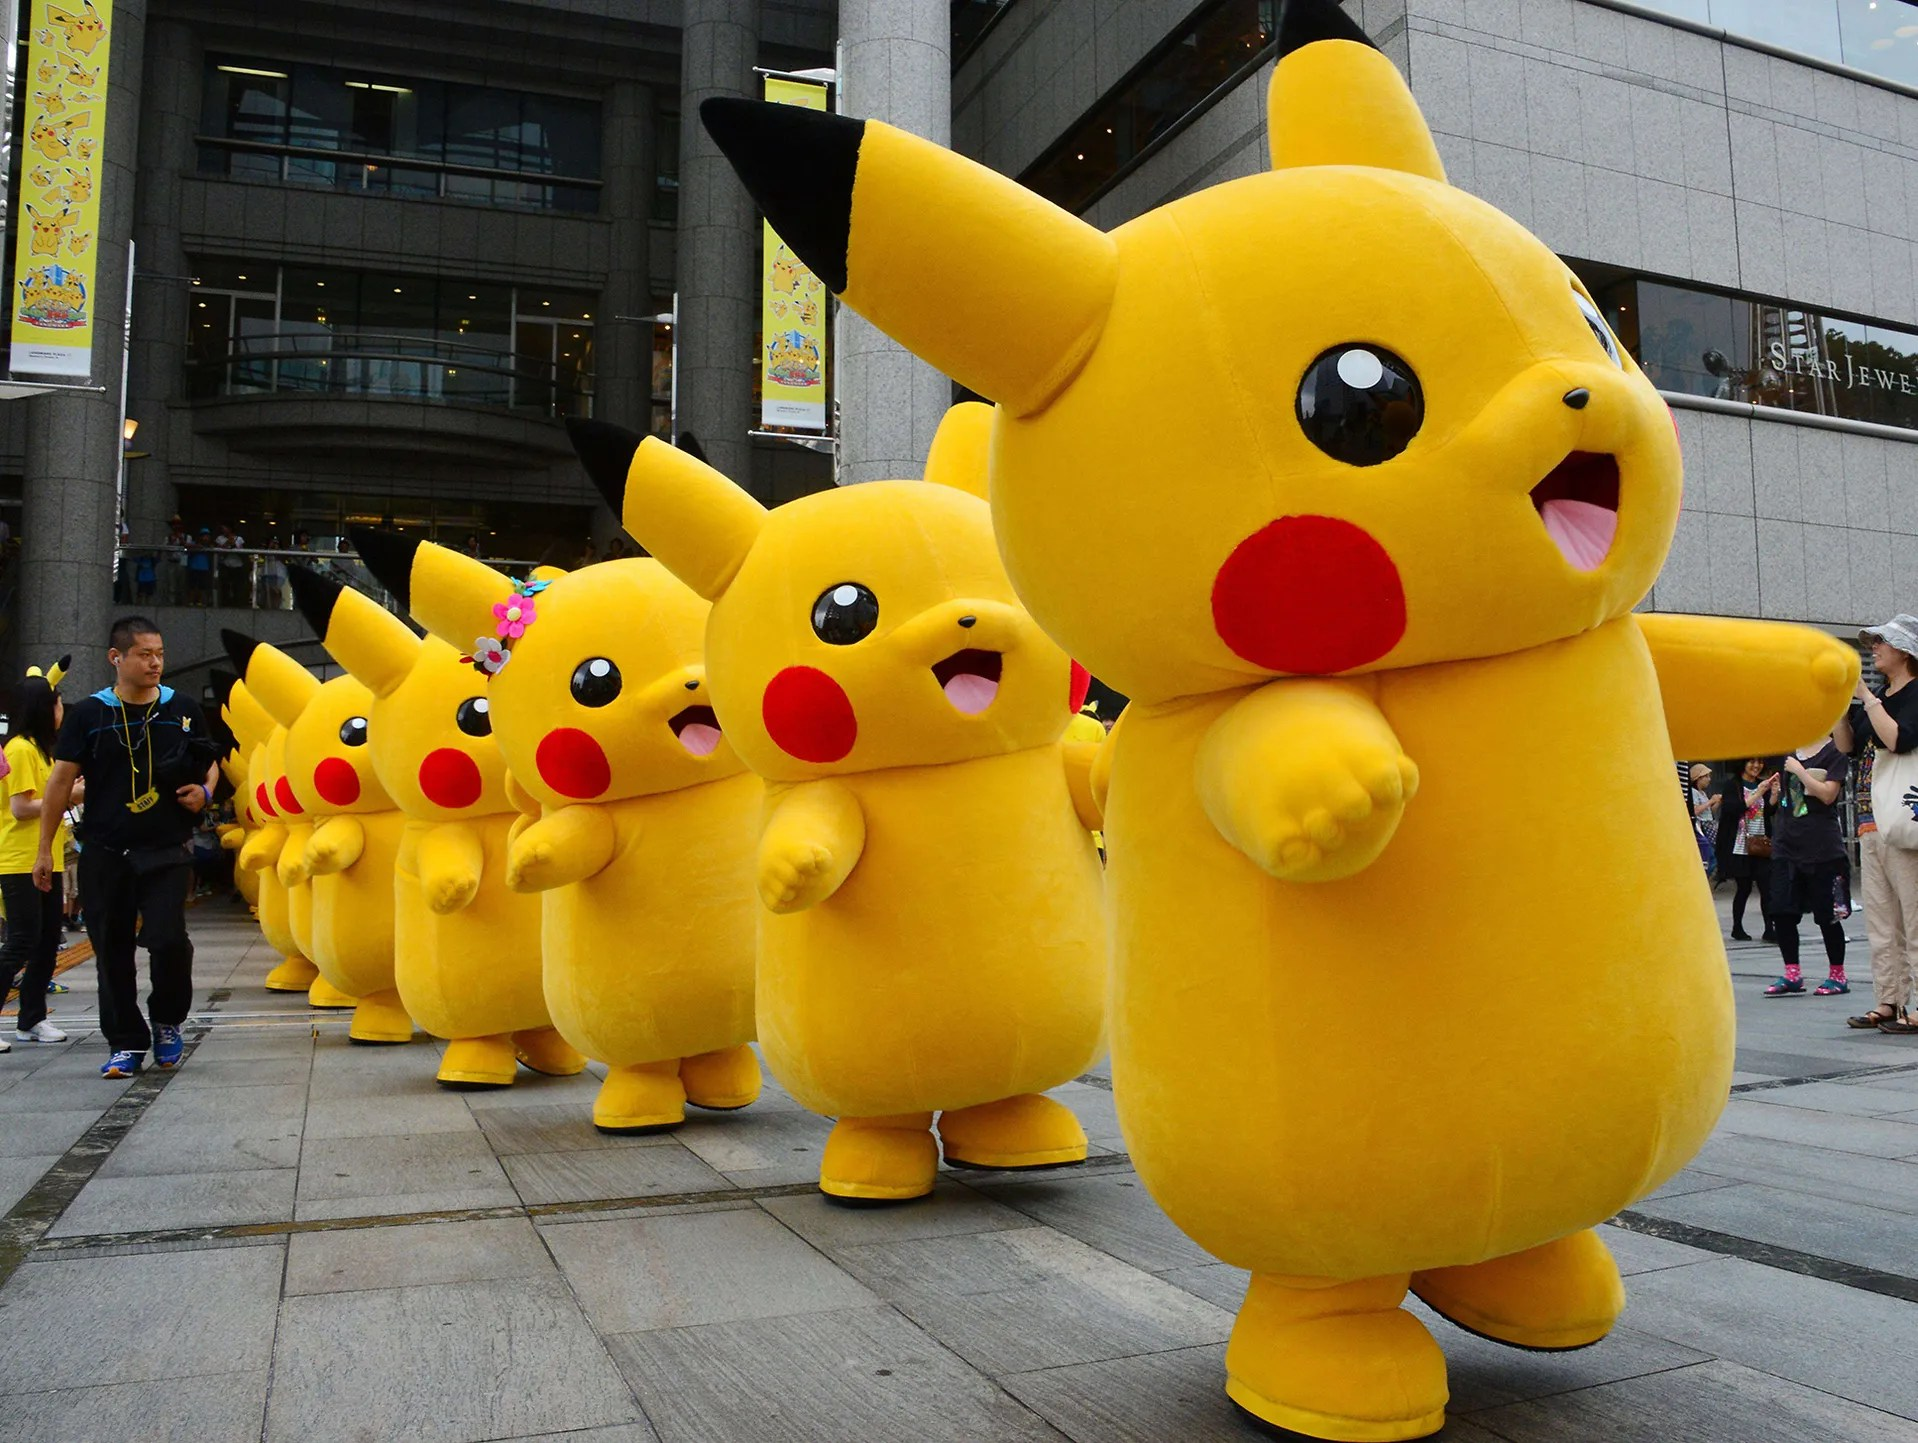 Pikachu characters from the Nintendo video game Pokemon parade at the Landmark Plaza shopping mall on Aug. 14 in Yokohama, Japan.